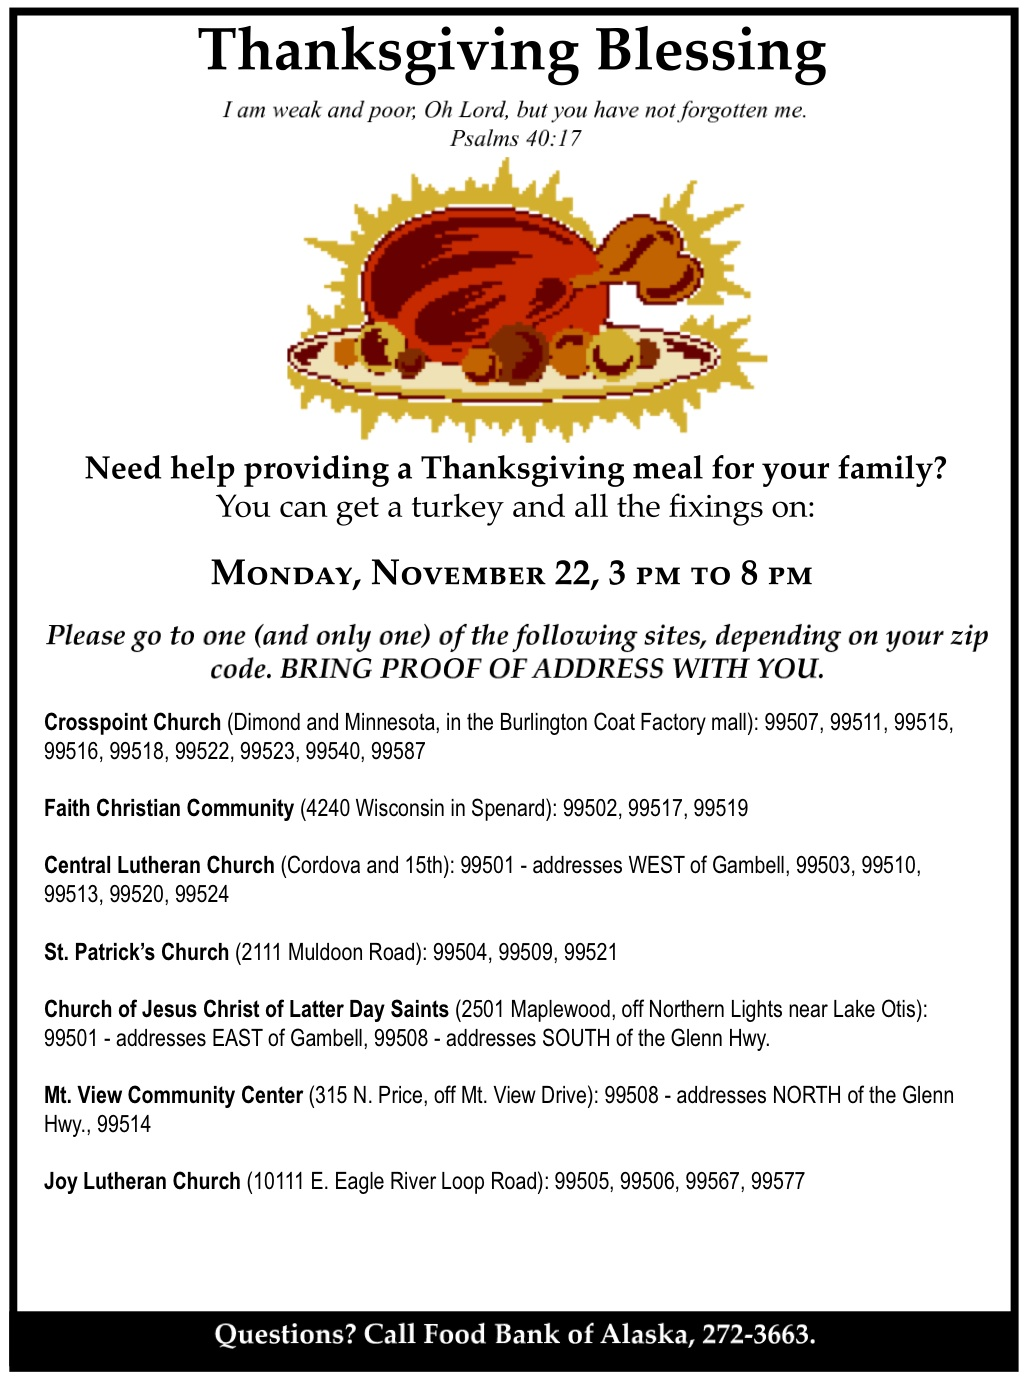 Thanksgiving Potluck Flyer Templates Need help for thanksgiving?